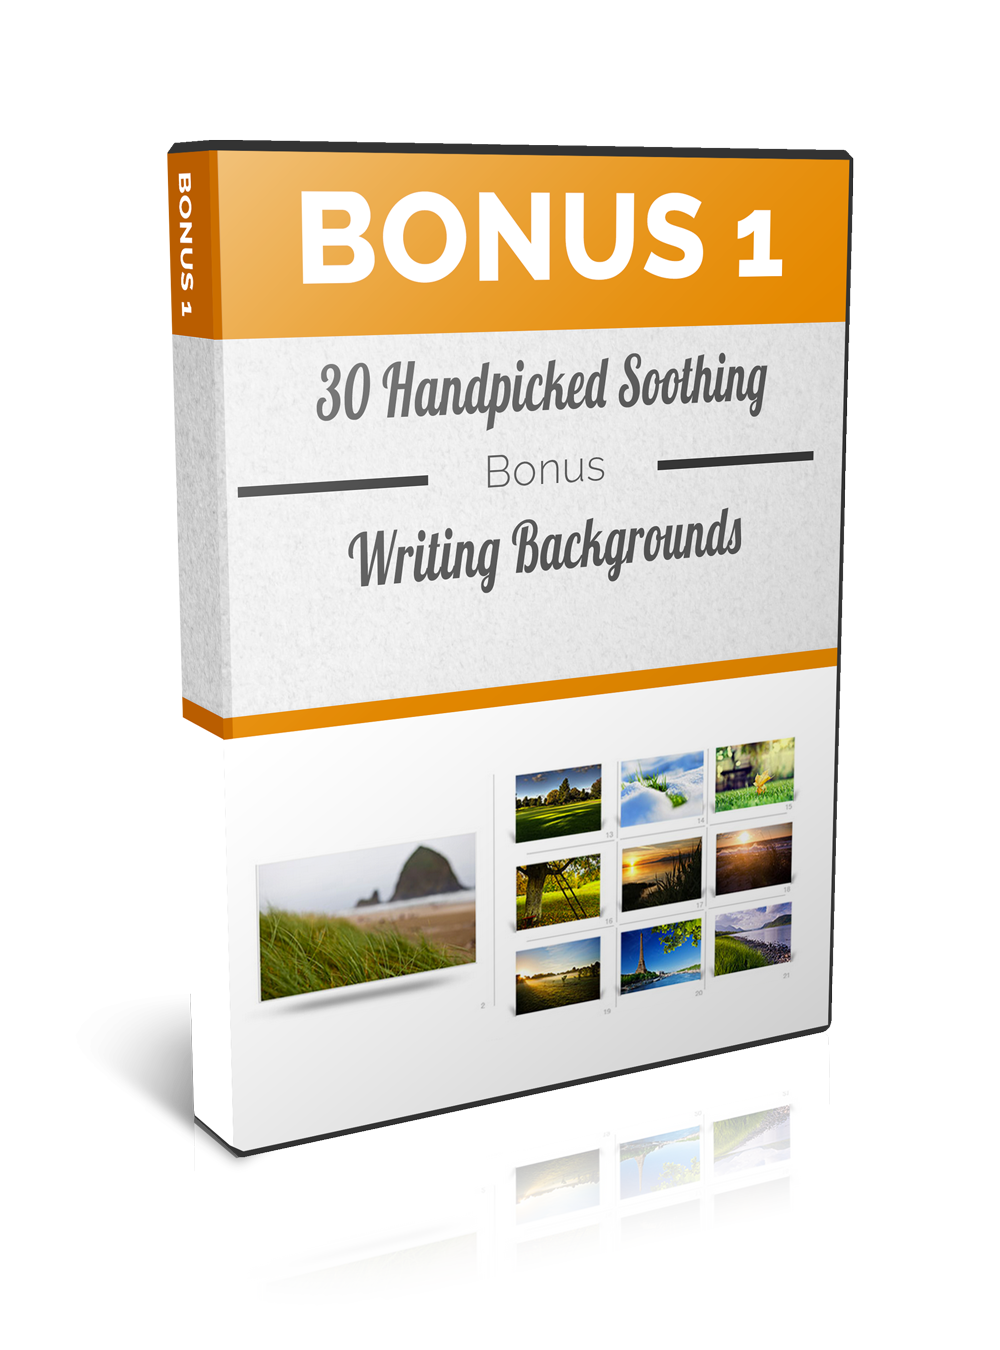 www.learn-scrivener-fast.com Scrivener Training & Coaching Course - Bonus 1 - High Definition Background Images